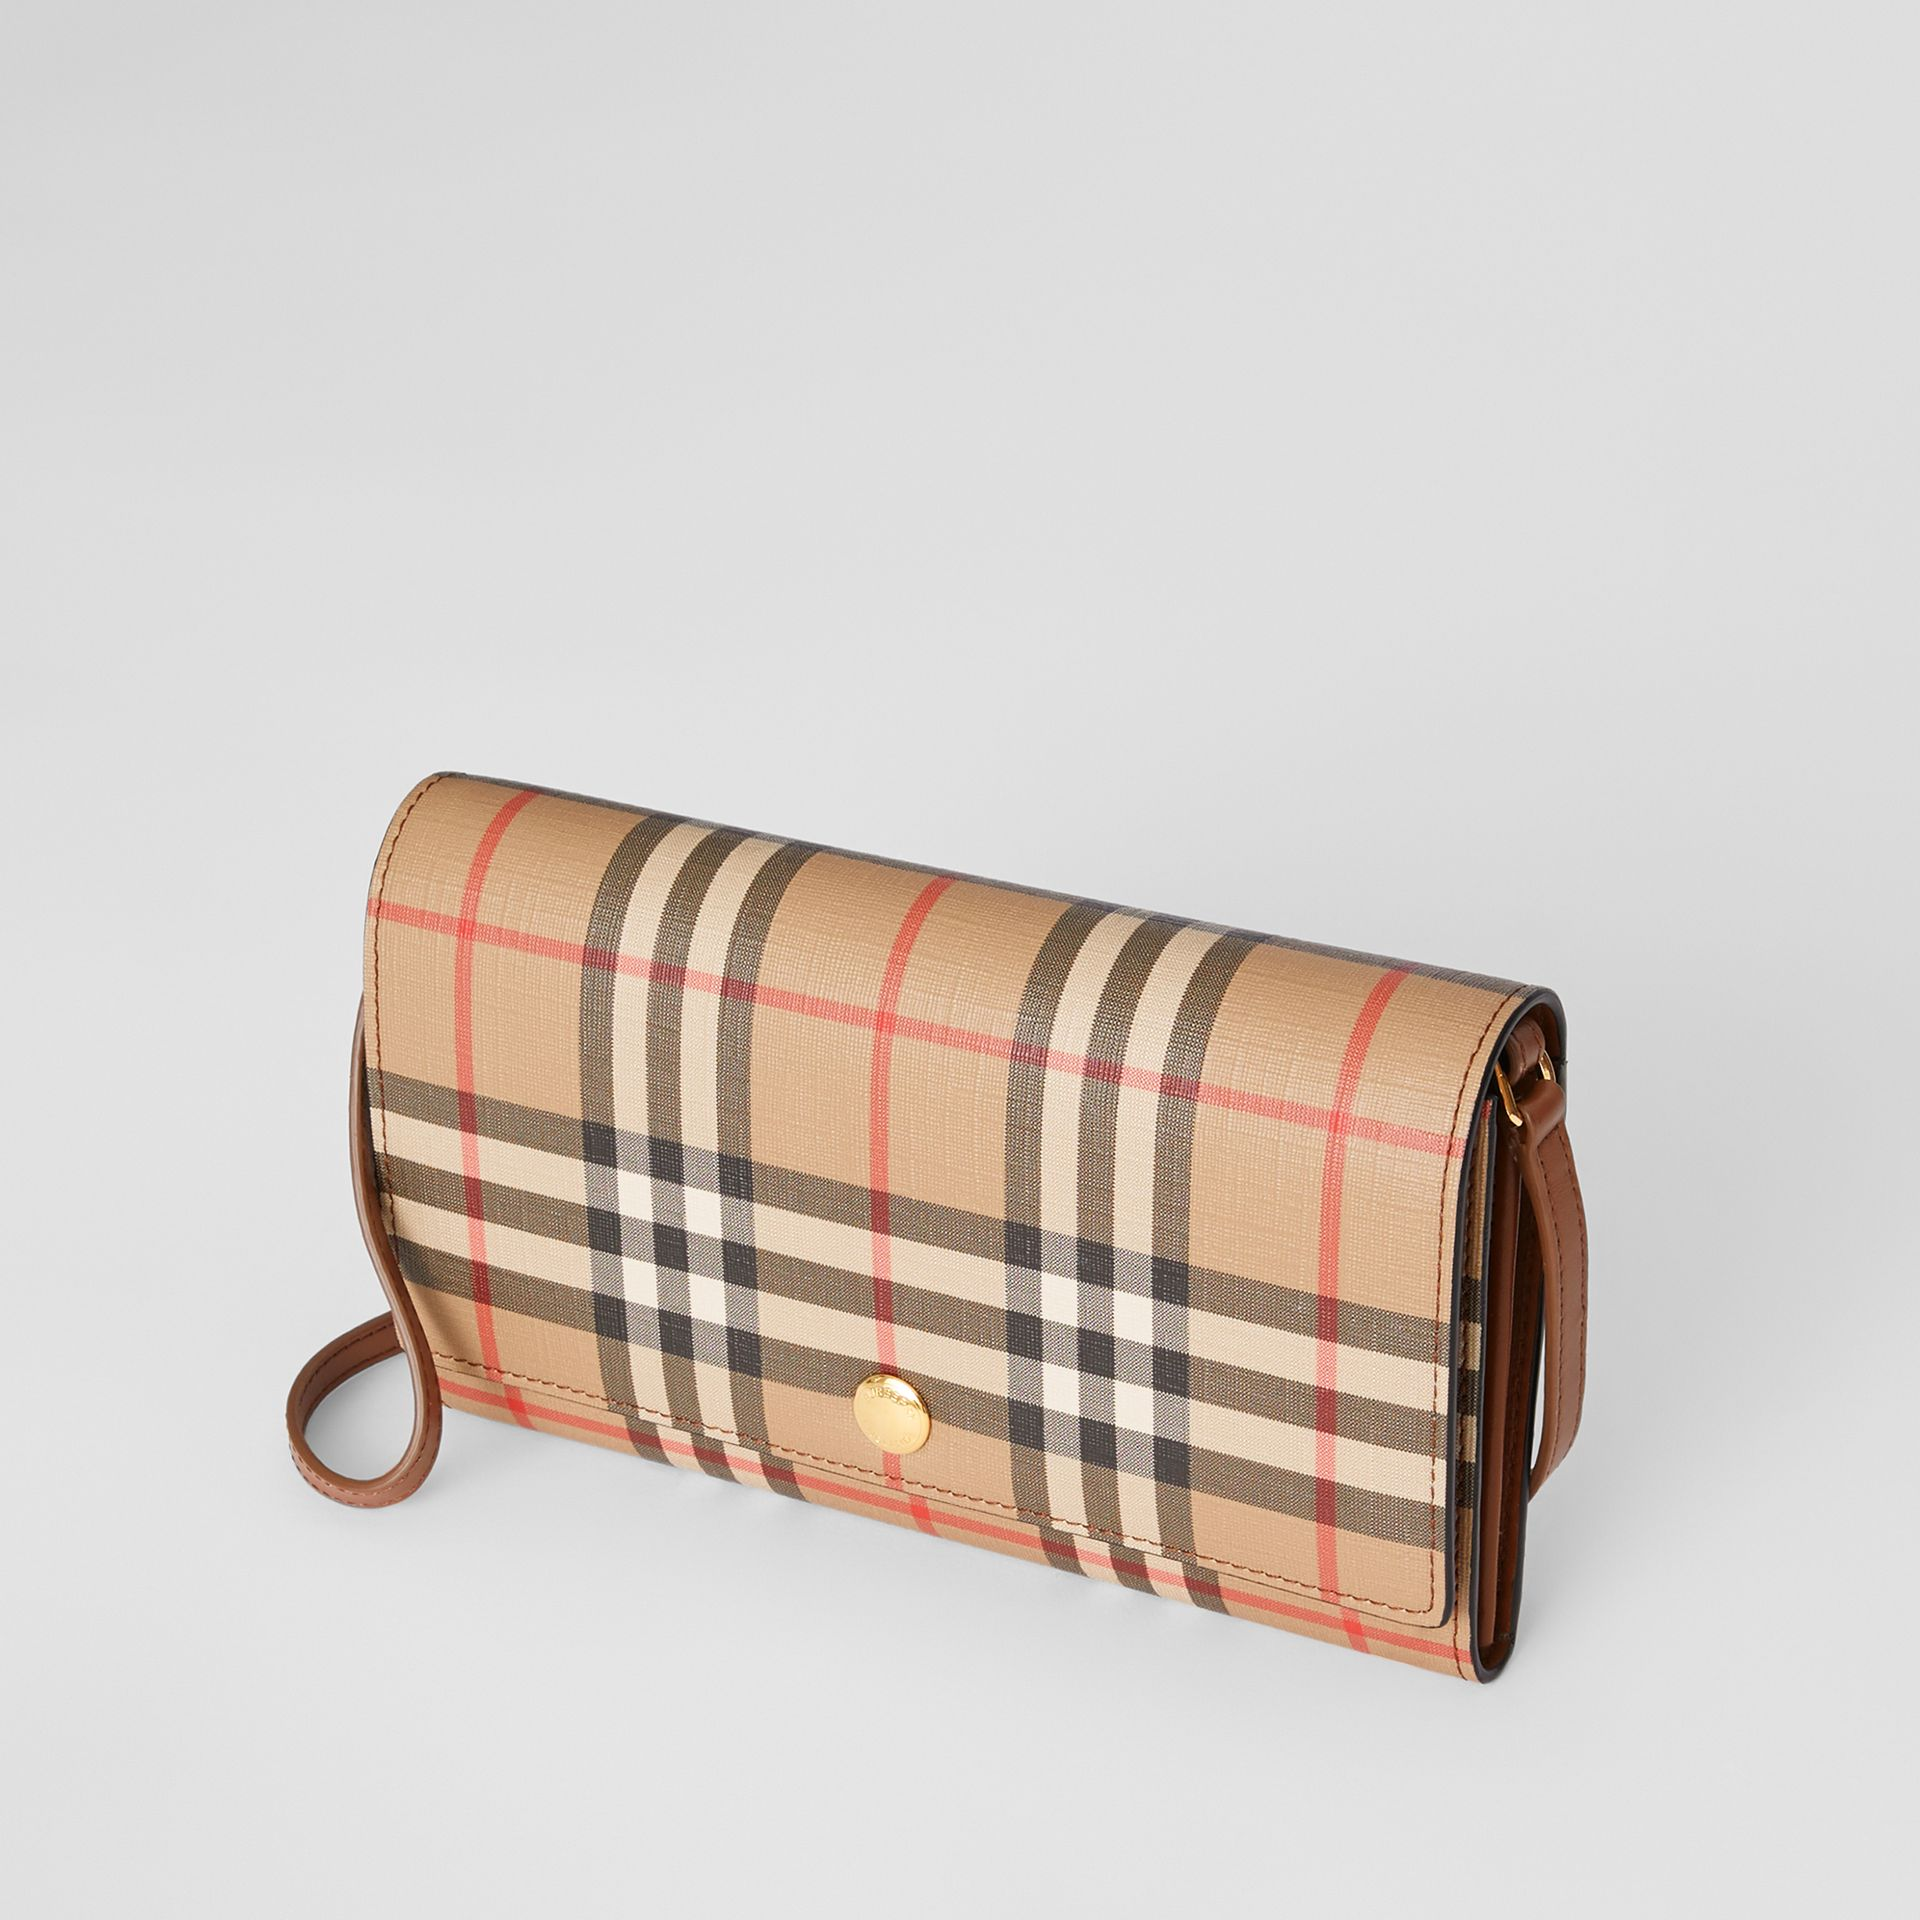 Portefeuille Vintage check avec sangle amovible (Brun Malt) - Femme | Burberry Canada - photo de la galerie 2